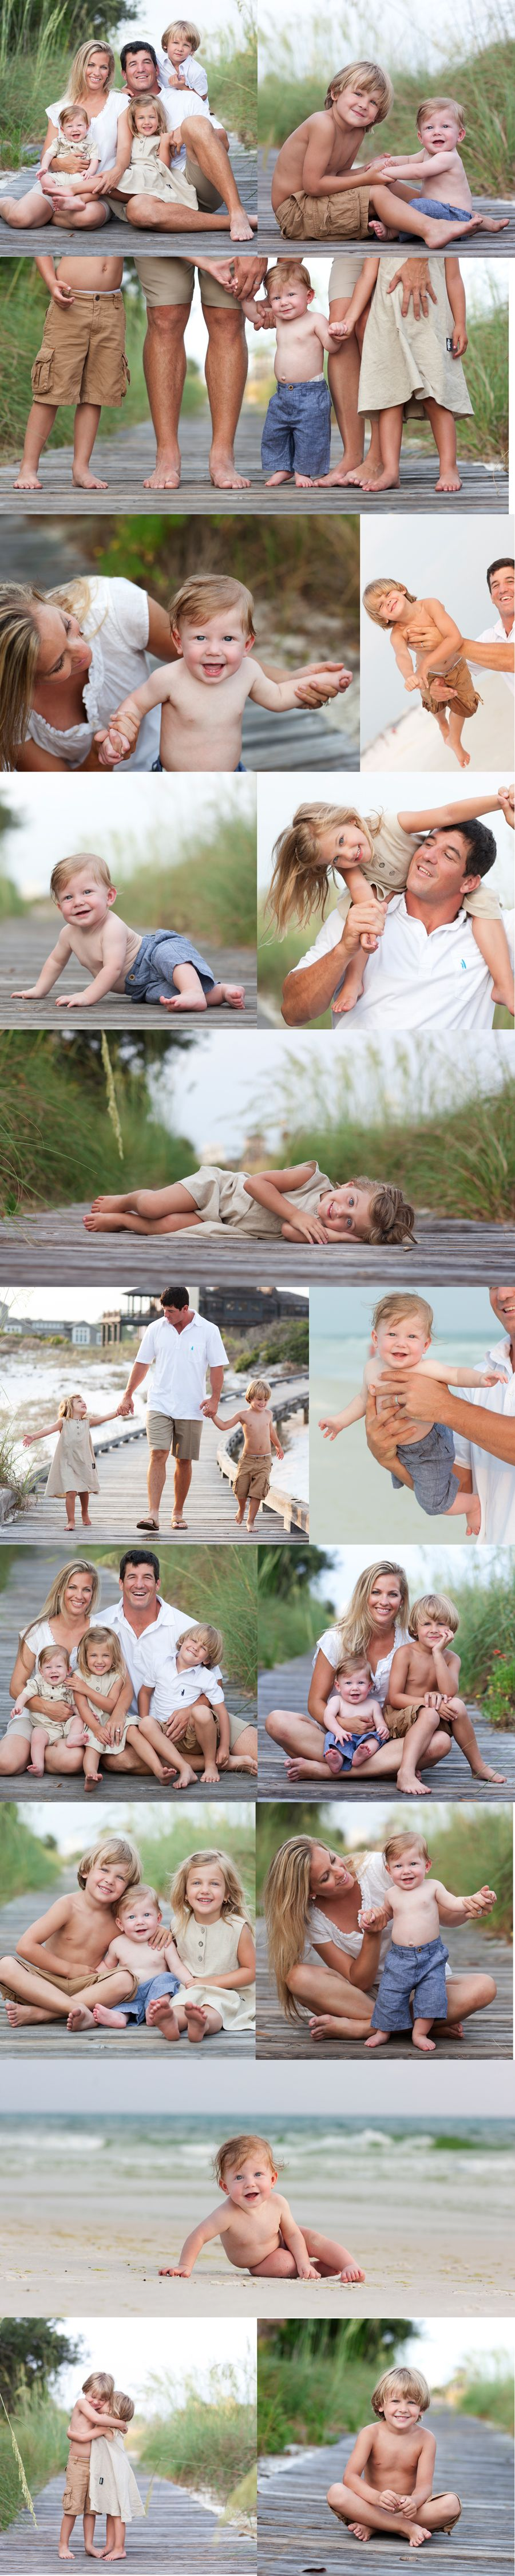 Adorable Beach Family Shots I So Want To Take A Picture Like These One Day